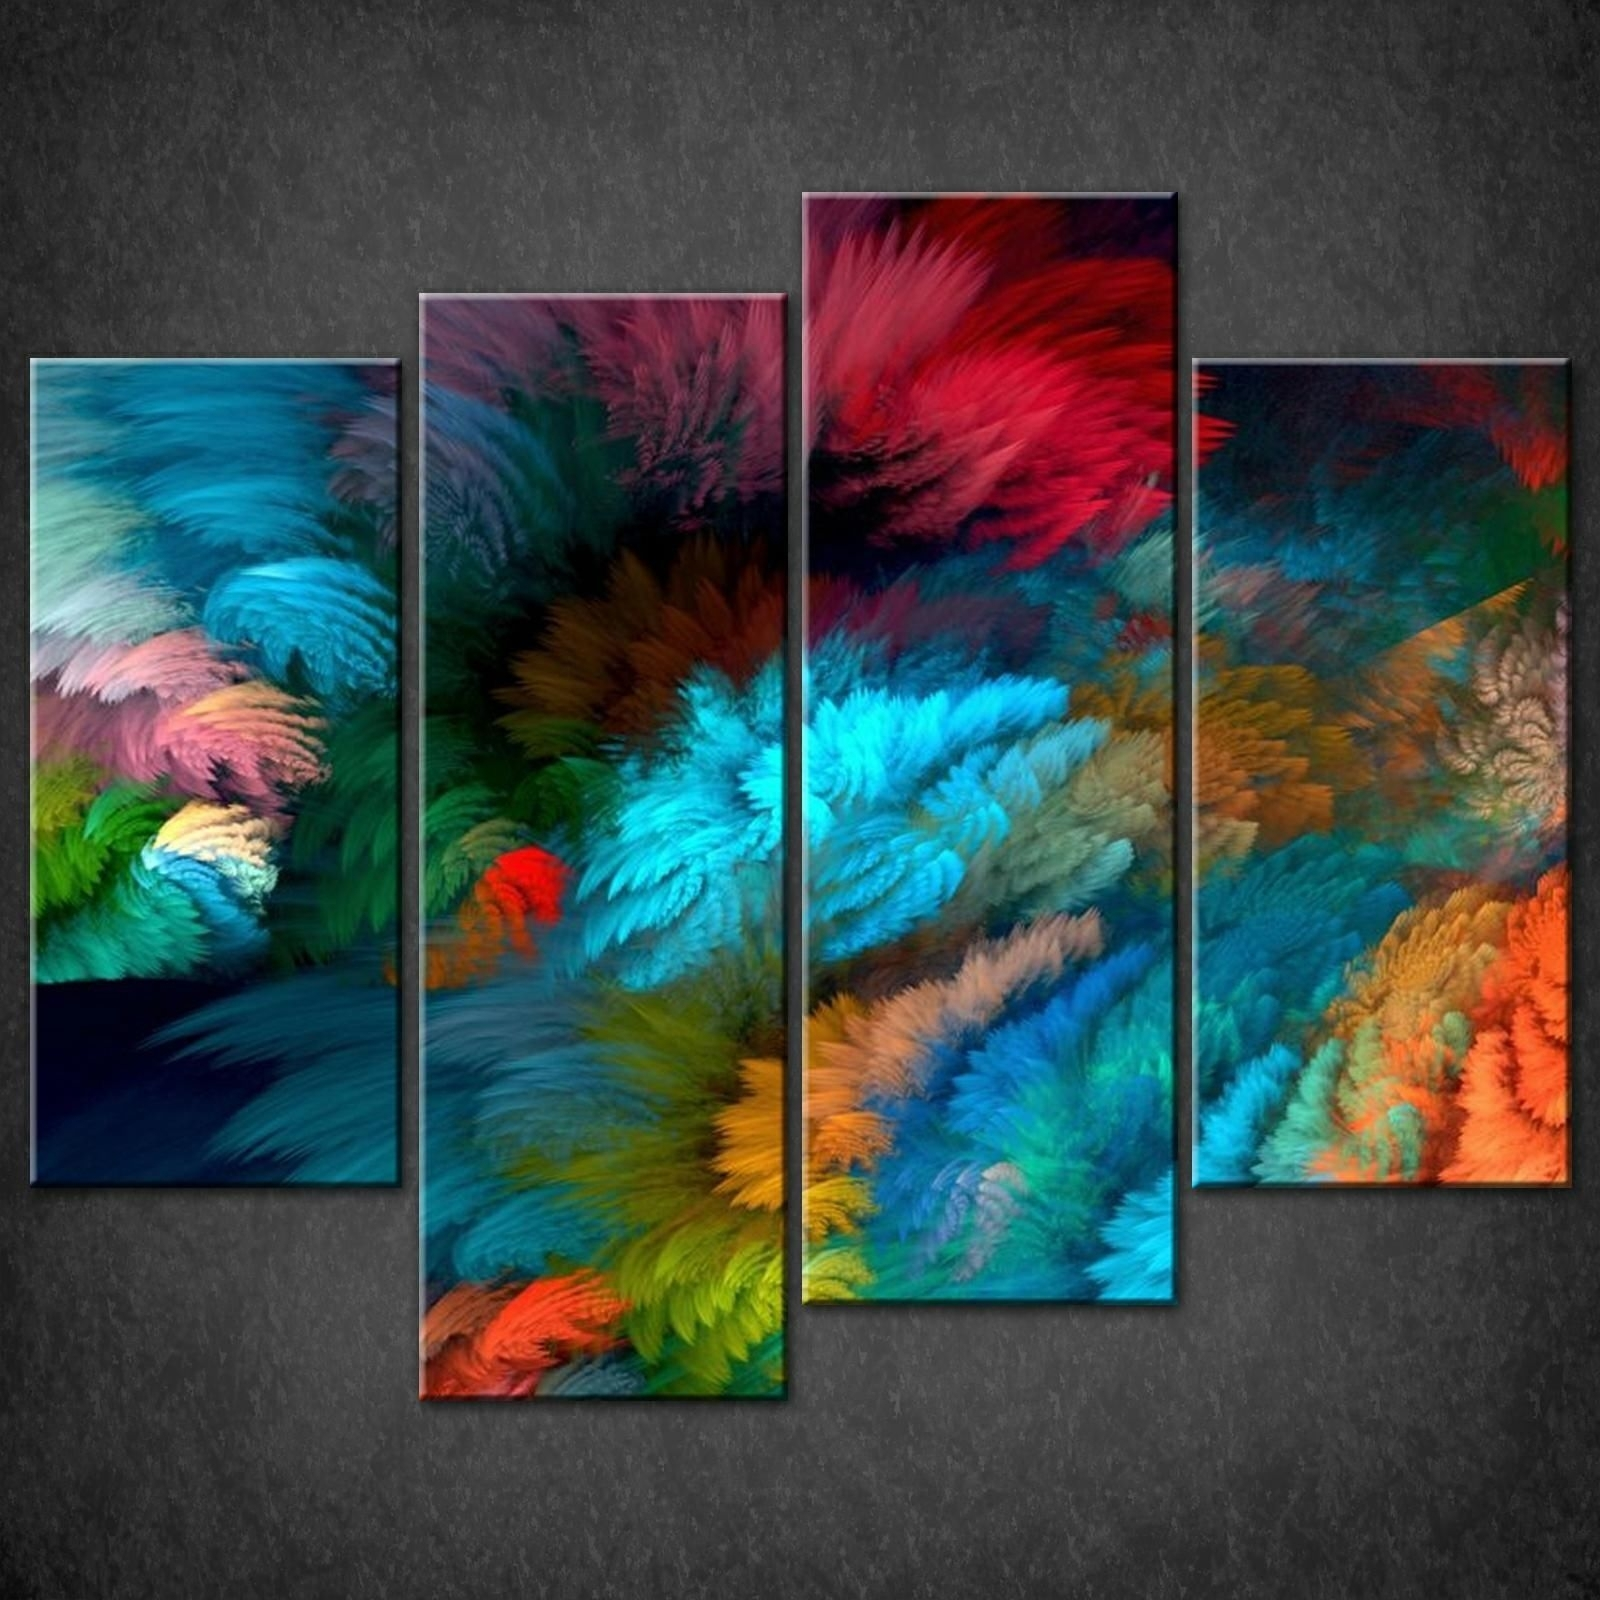 10 Best Ideas Of Large Canvas Painting Wall Art Pertaining To Most Up To Date Large Abstract Canvas Wall Art (View 5 of 20)